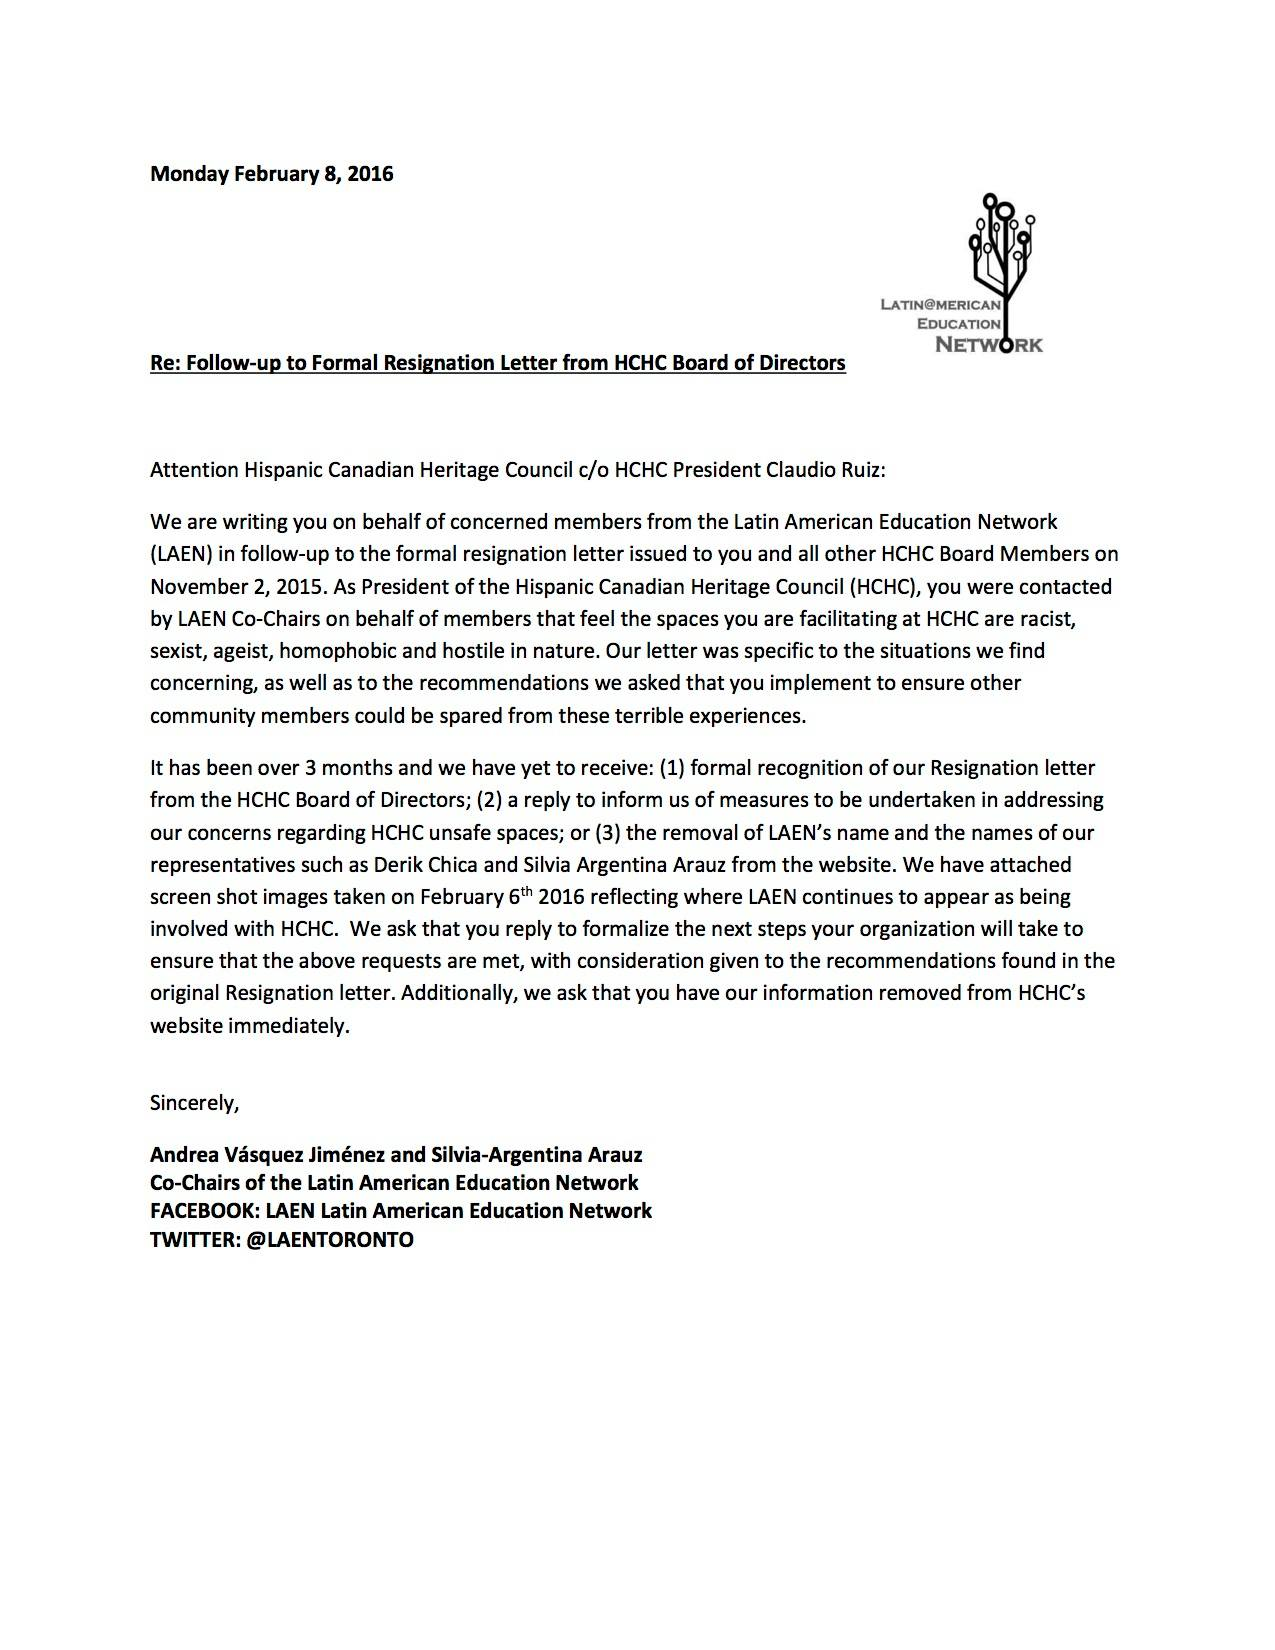 disciplinary letter template canada new 1650 53 kb png sample